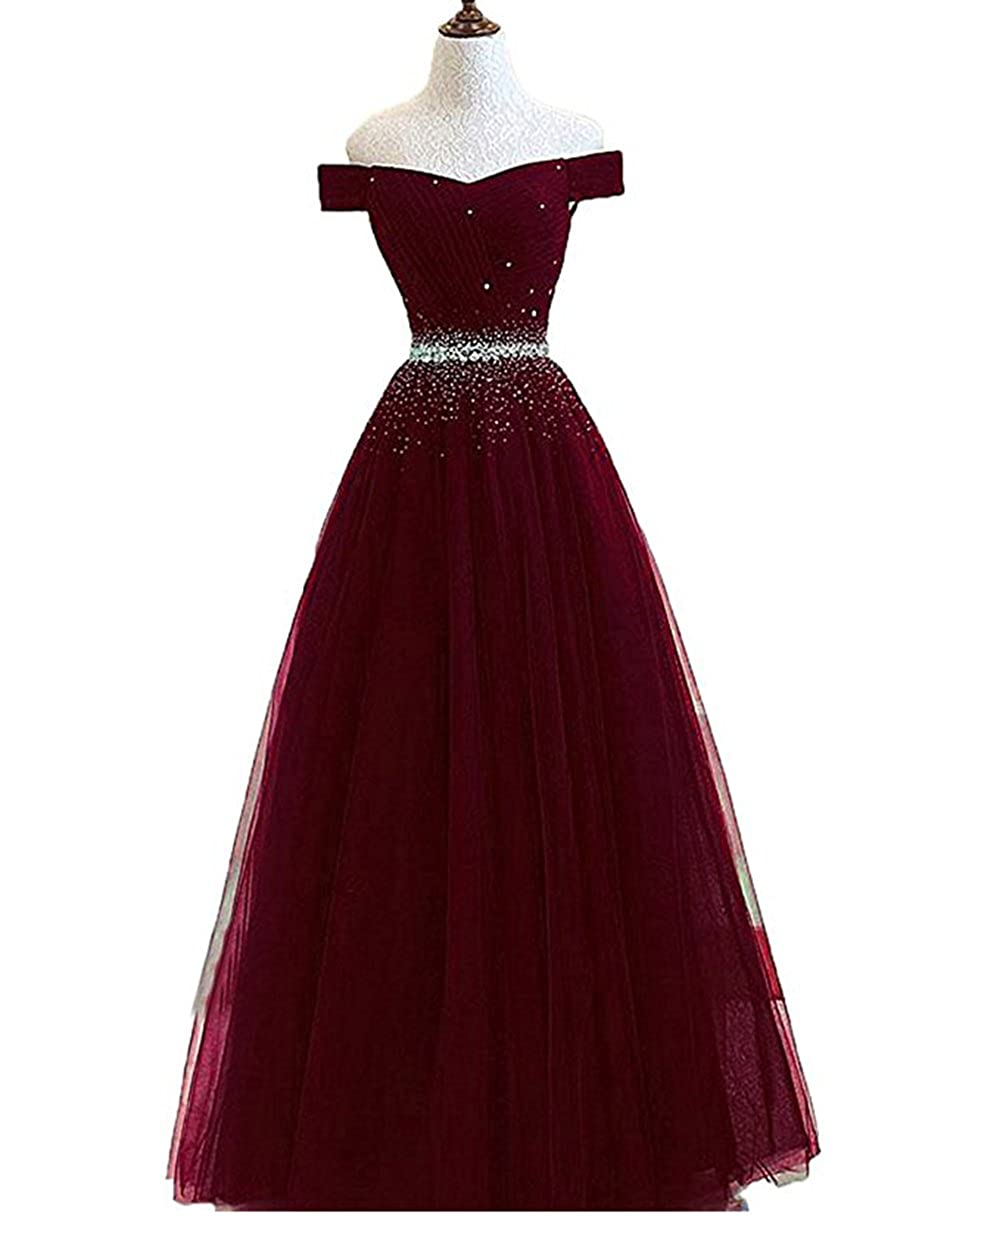 Dark Burgundy alilith.Z Sexy Off The Shoulder A Line Prom Dresses Crystal Beaded Long Formal Evening Dresses Party Gowns for Women